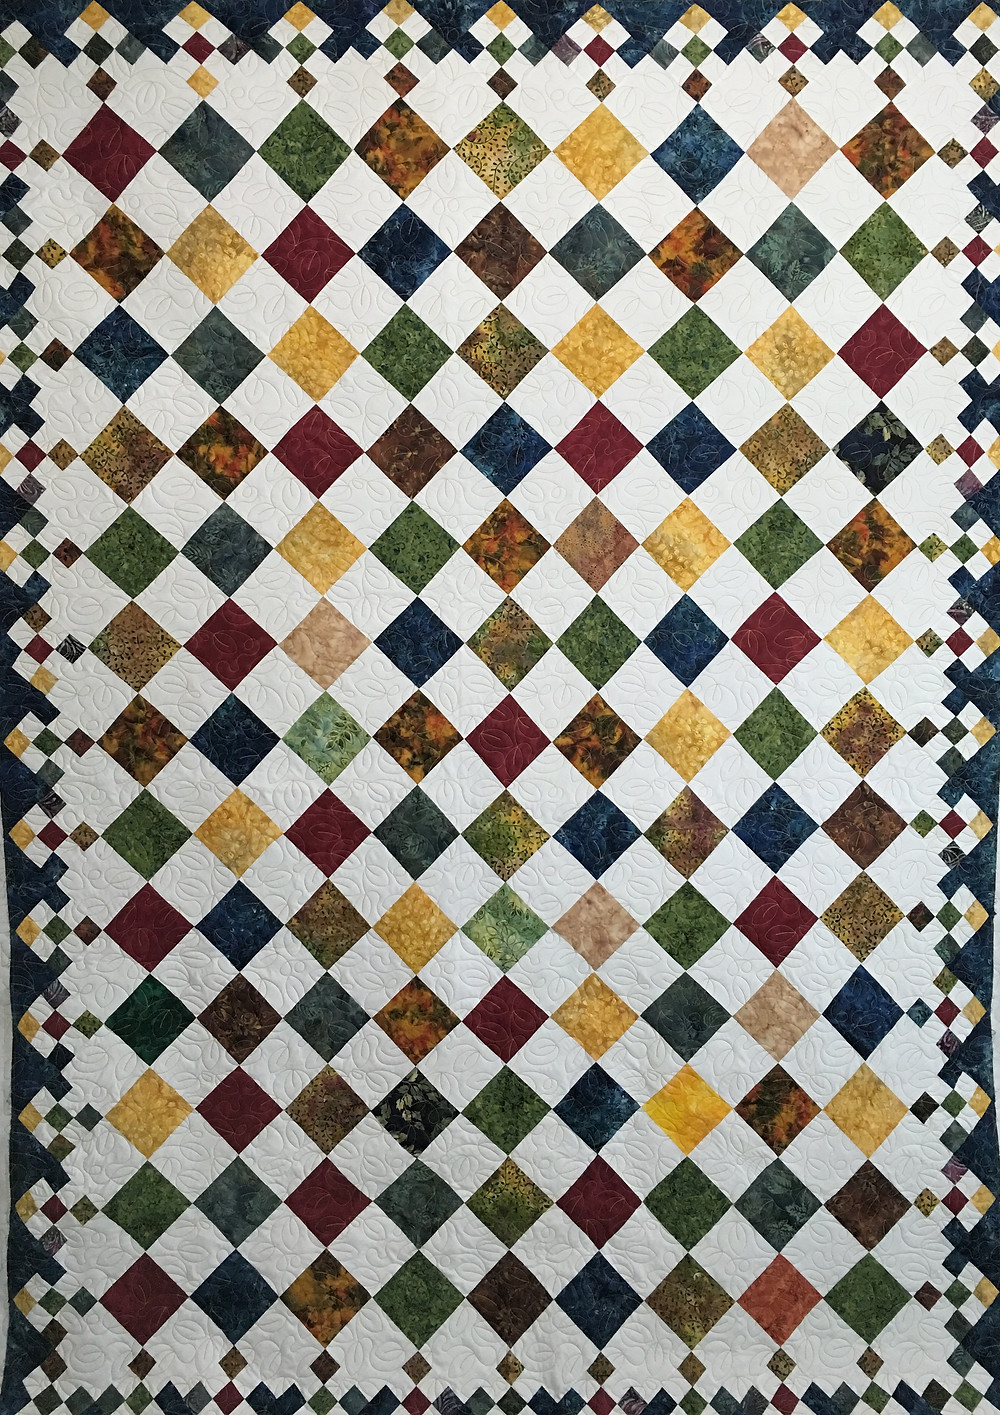 Diamond Patch Quilt by Roxane Darmell